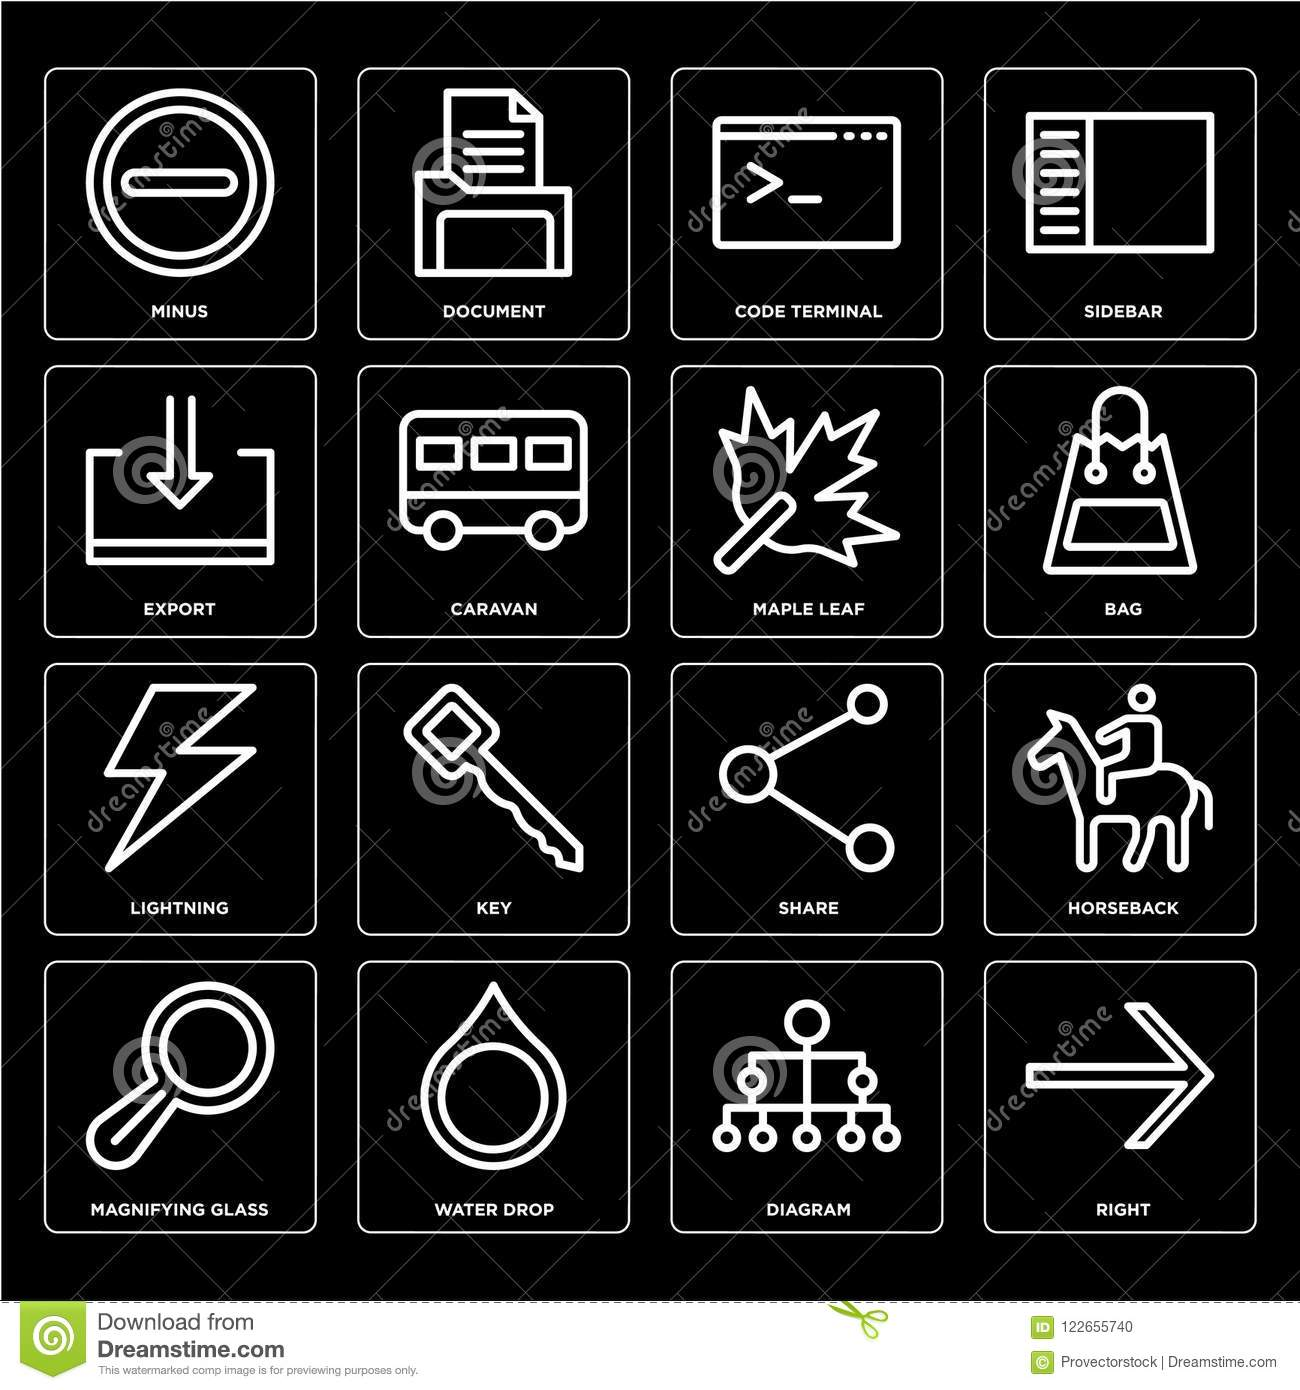 Set Of Right, Diagram, Magnifying Glass, Share, Lightning